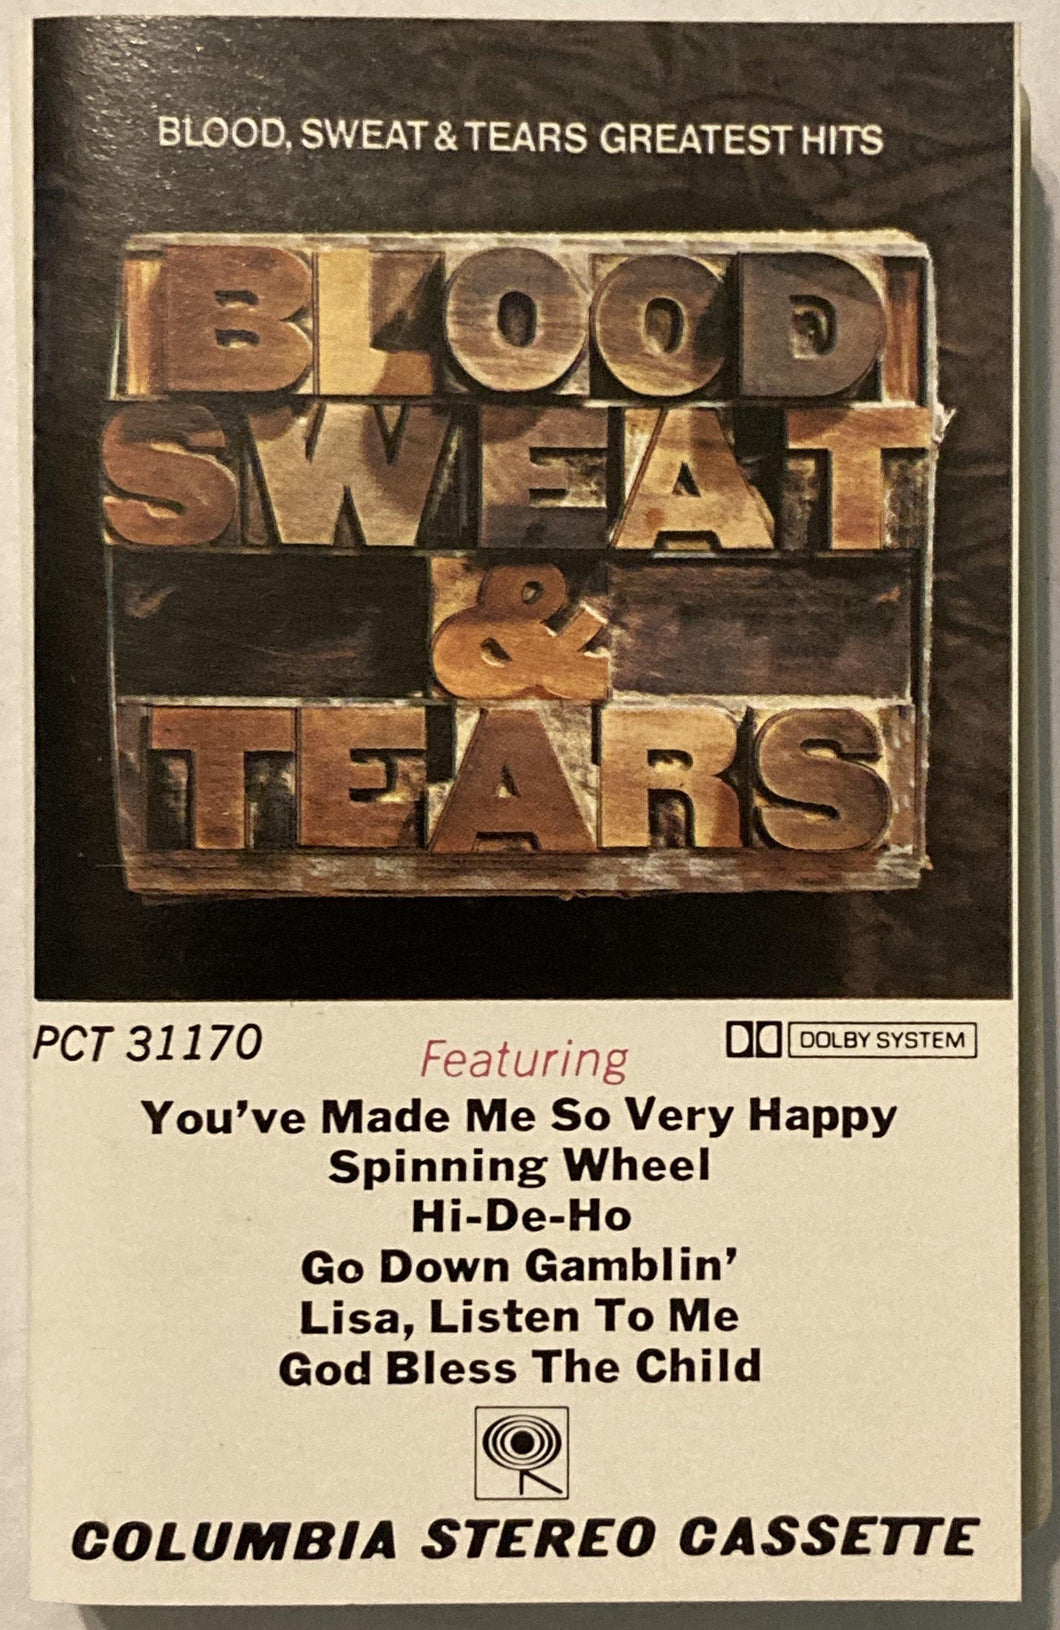 Blood Sweat & Tears - Greatest Hits Cassette VG